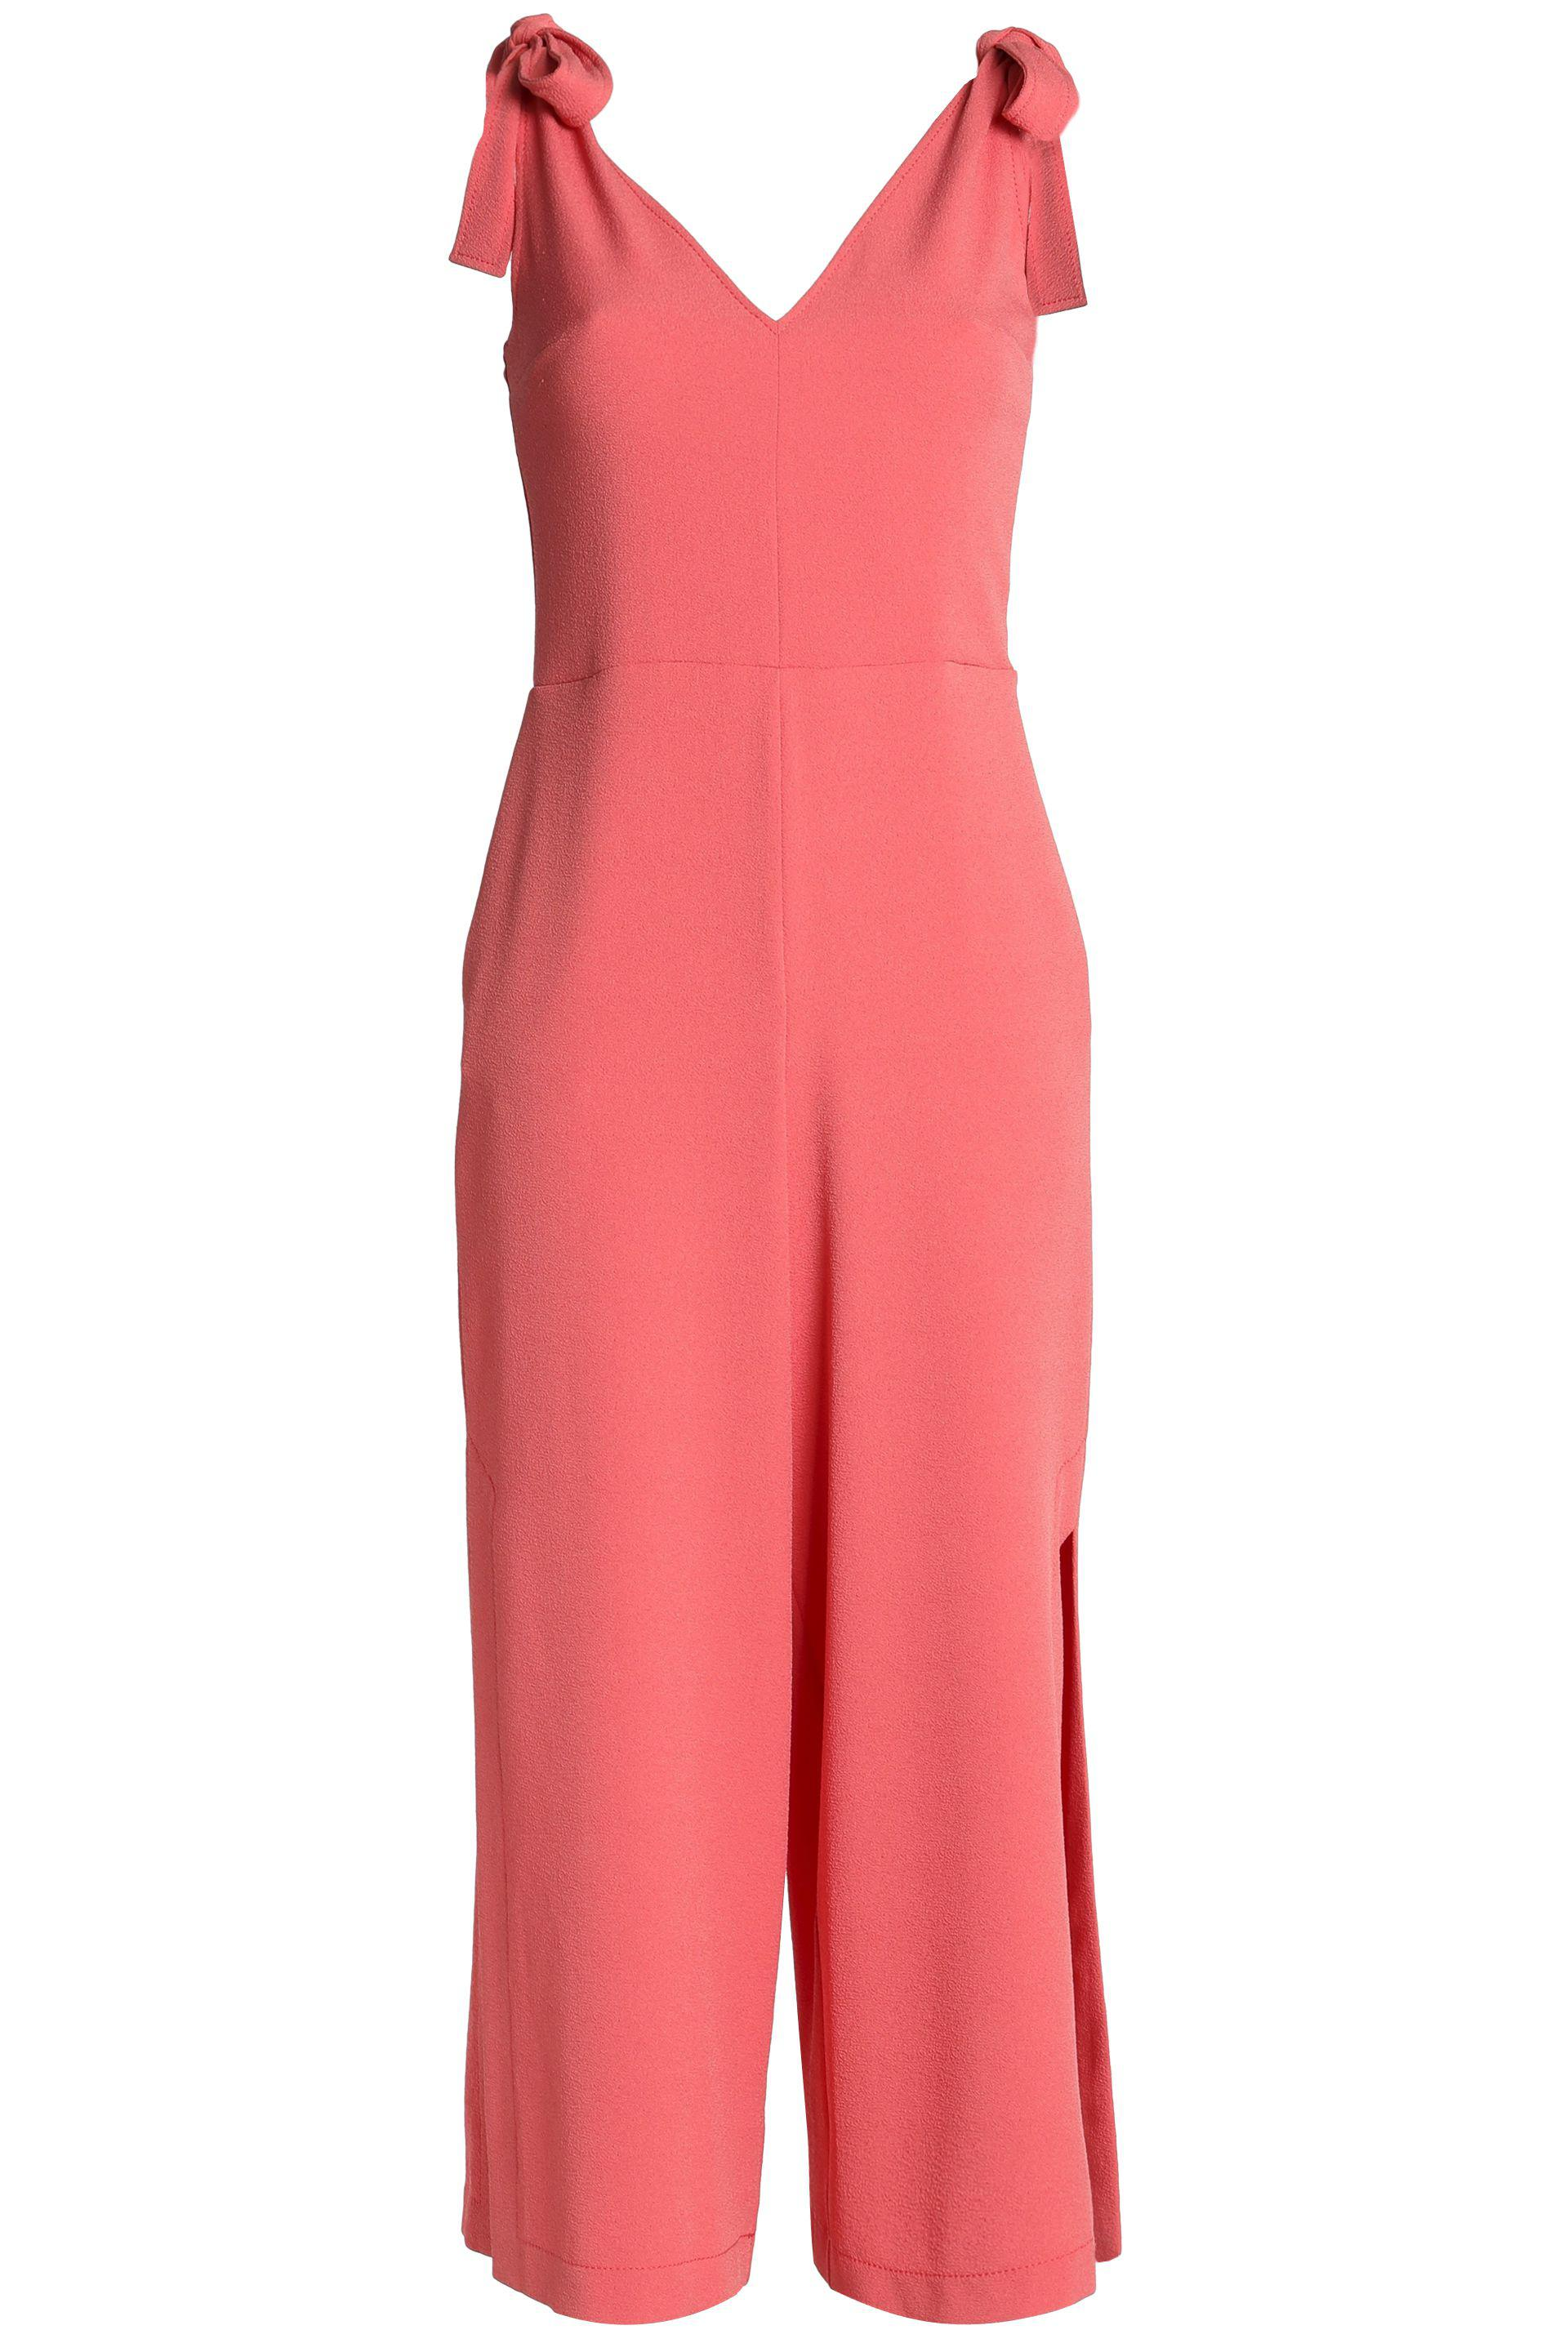 71db90bff963 See By Chloé Cropped Bow-detailed Crepe Jumpsuit Antique Rose in ...